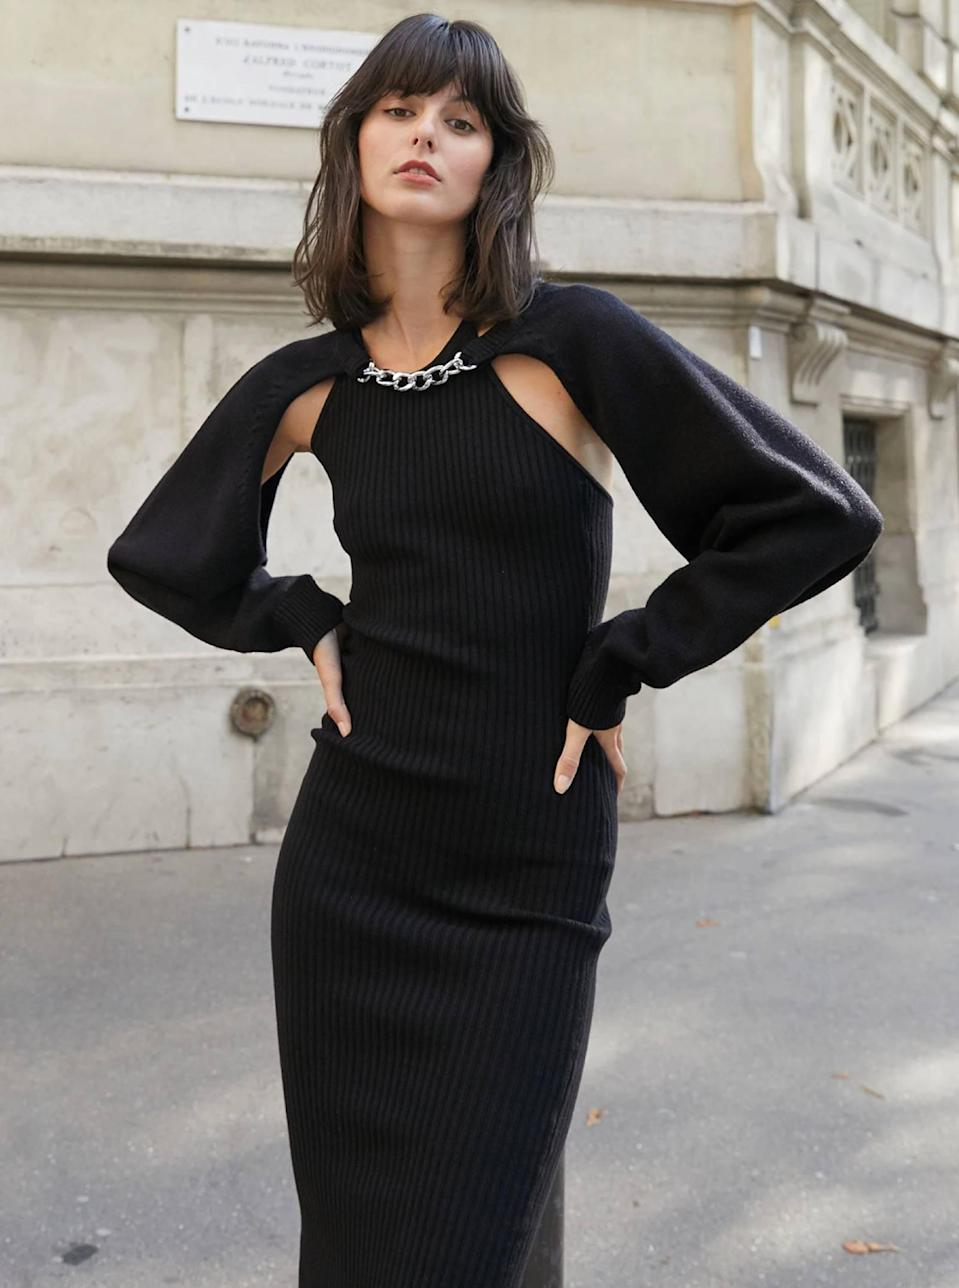 """No need for accessories when you have this chain-link shrug that's basically jewelry in sweater form. $105, Pixie Market. <a href=""""https://www.pixiemarket.com/products/black-chain-link-knit-bolero?"""" rel=""""nofollow noopener"""" target=""""_blank"""" data-ylk=""""slk:Get it now!"""" class=""""link rapid-noclick-resp"""">Get it now!</a>"""